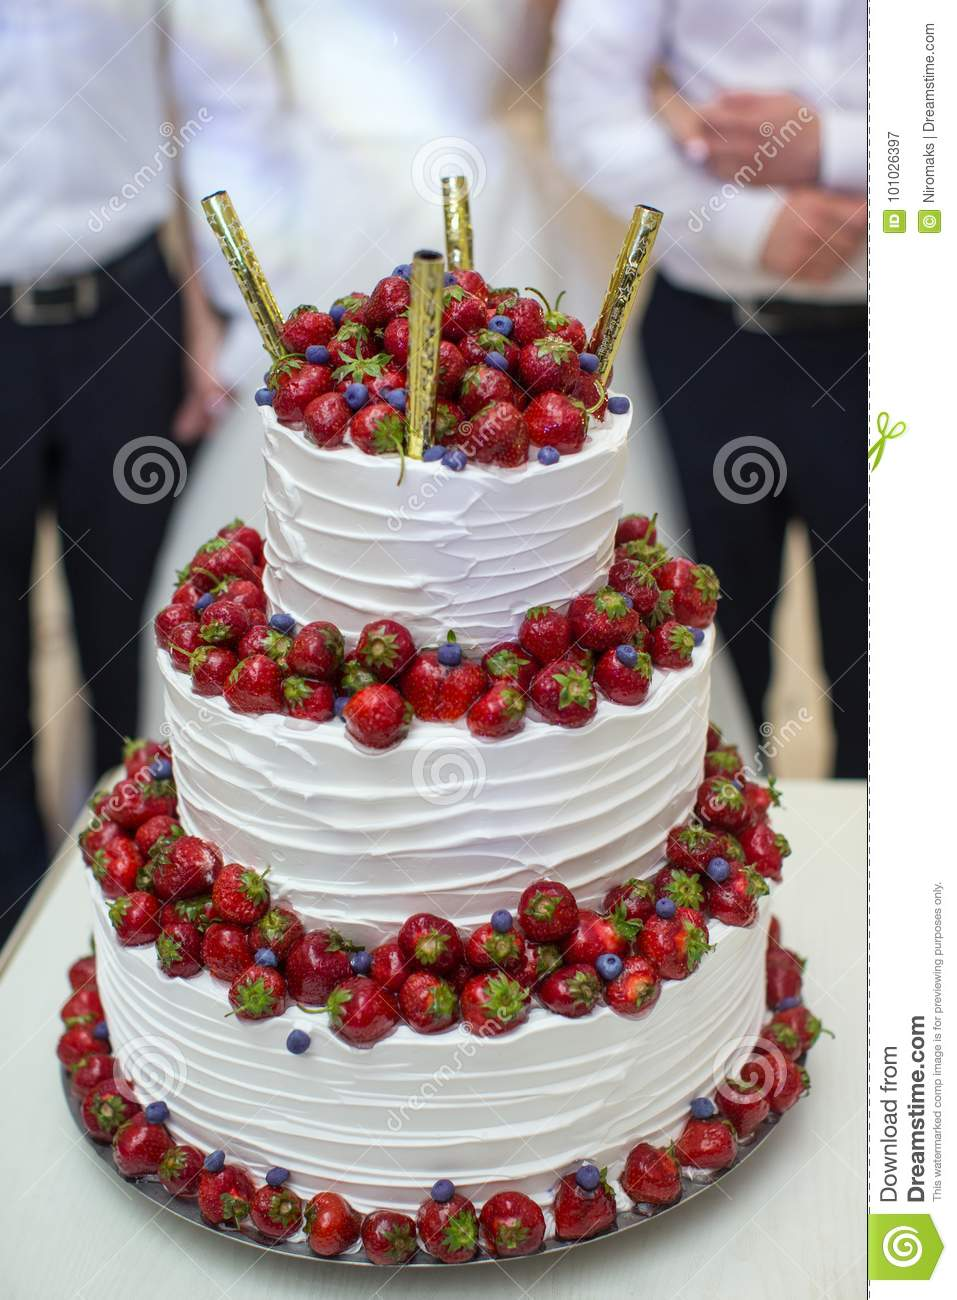 Vertical Shot Of A Red And White Wedding Cake With Fresh